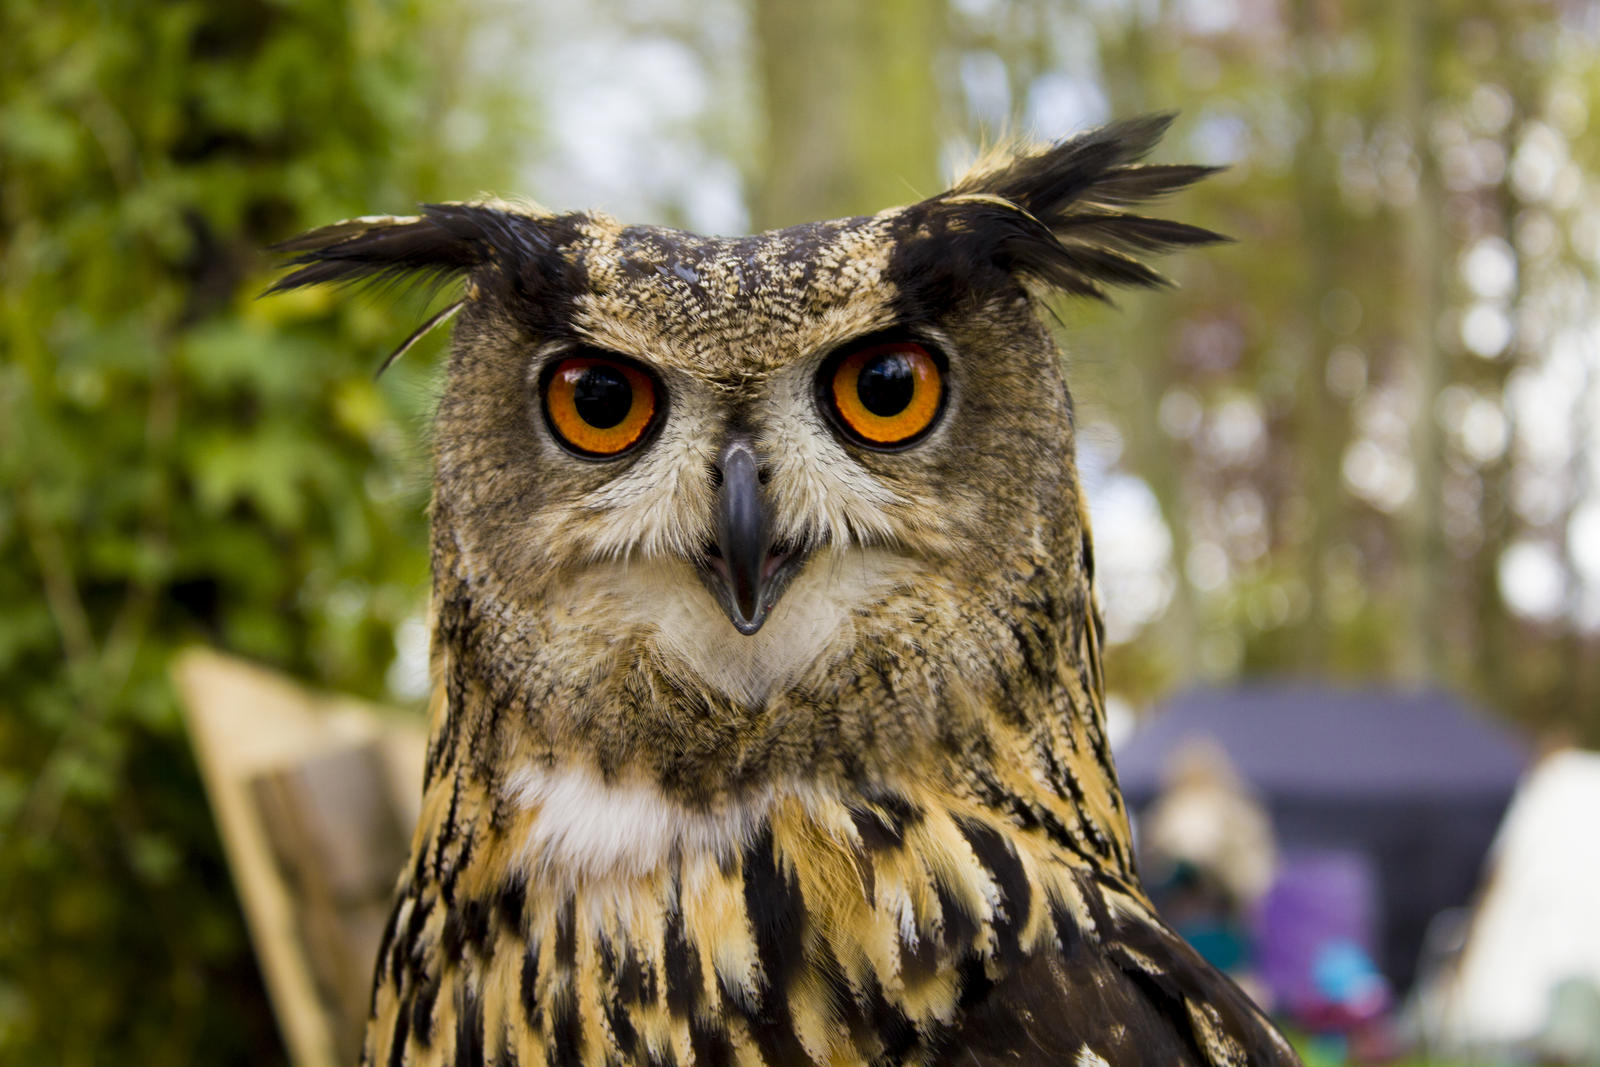 the_stare_of_the_owl_by_daveydesign-da06ui3.jpg